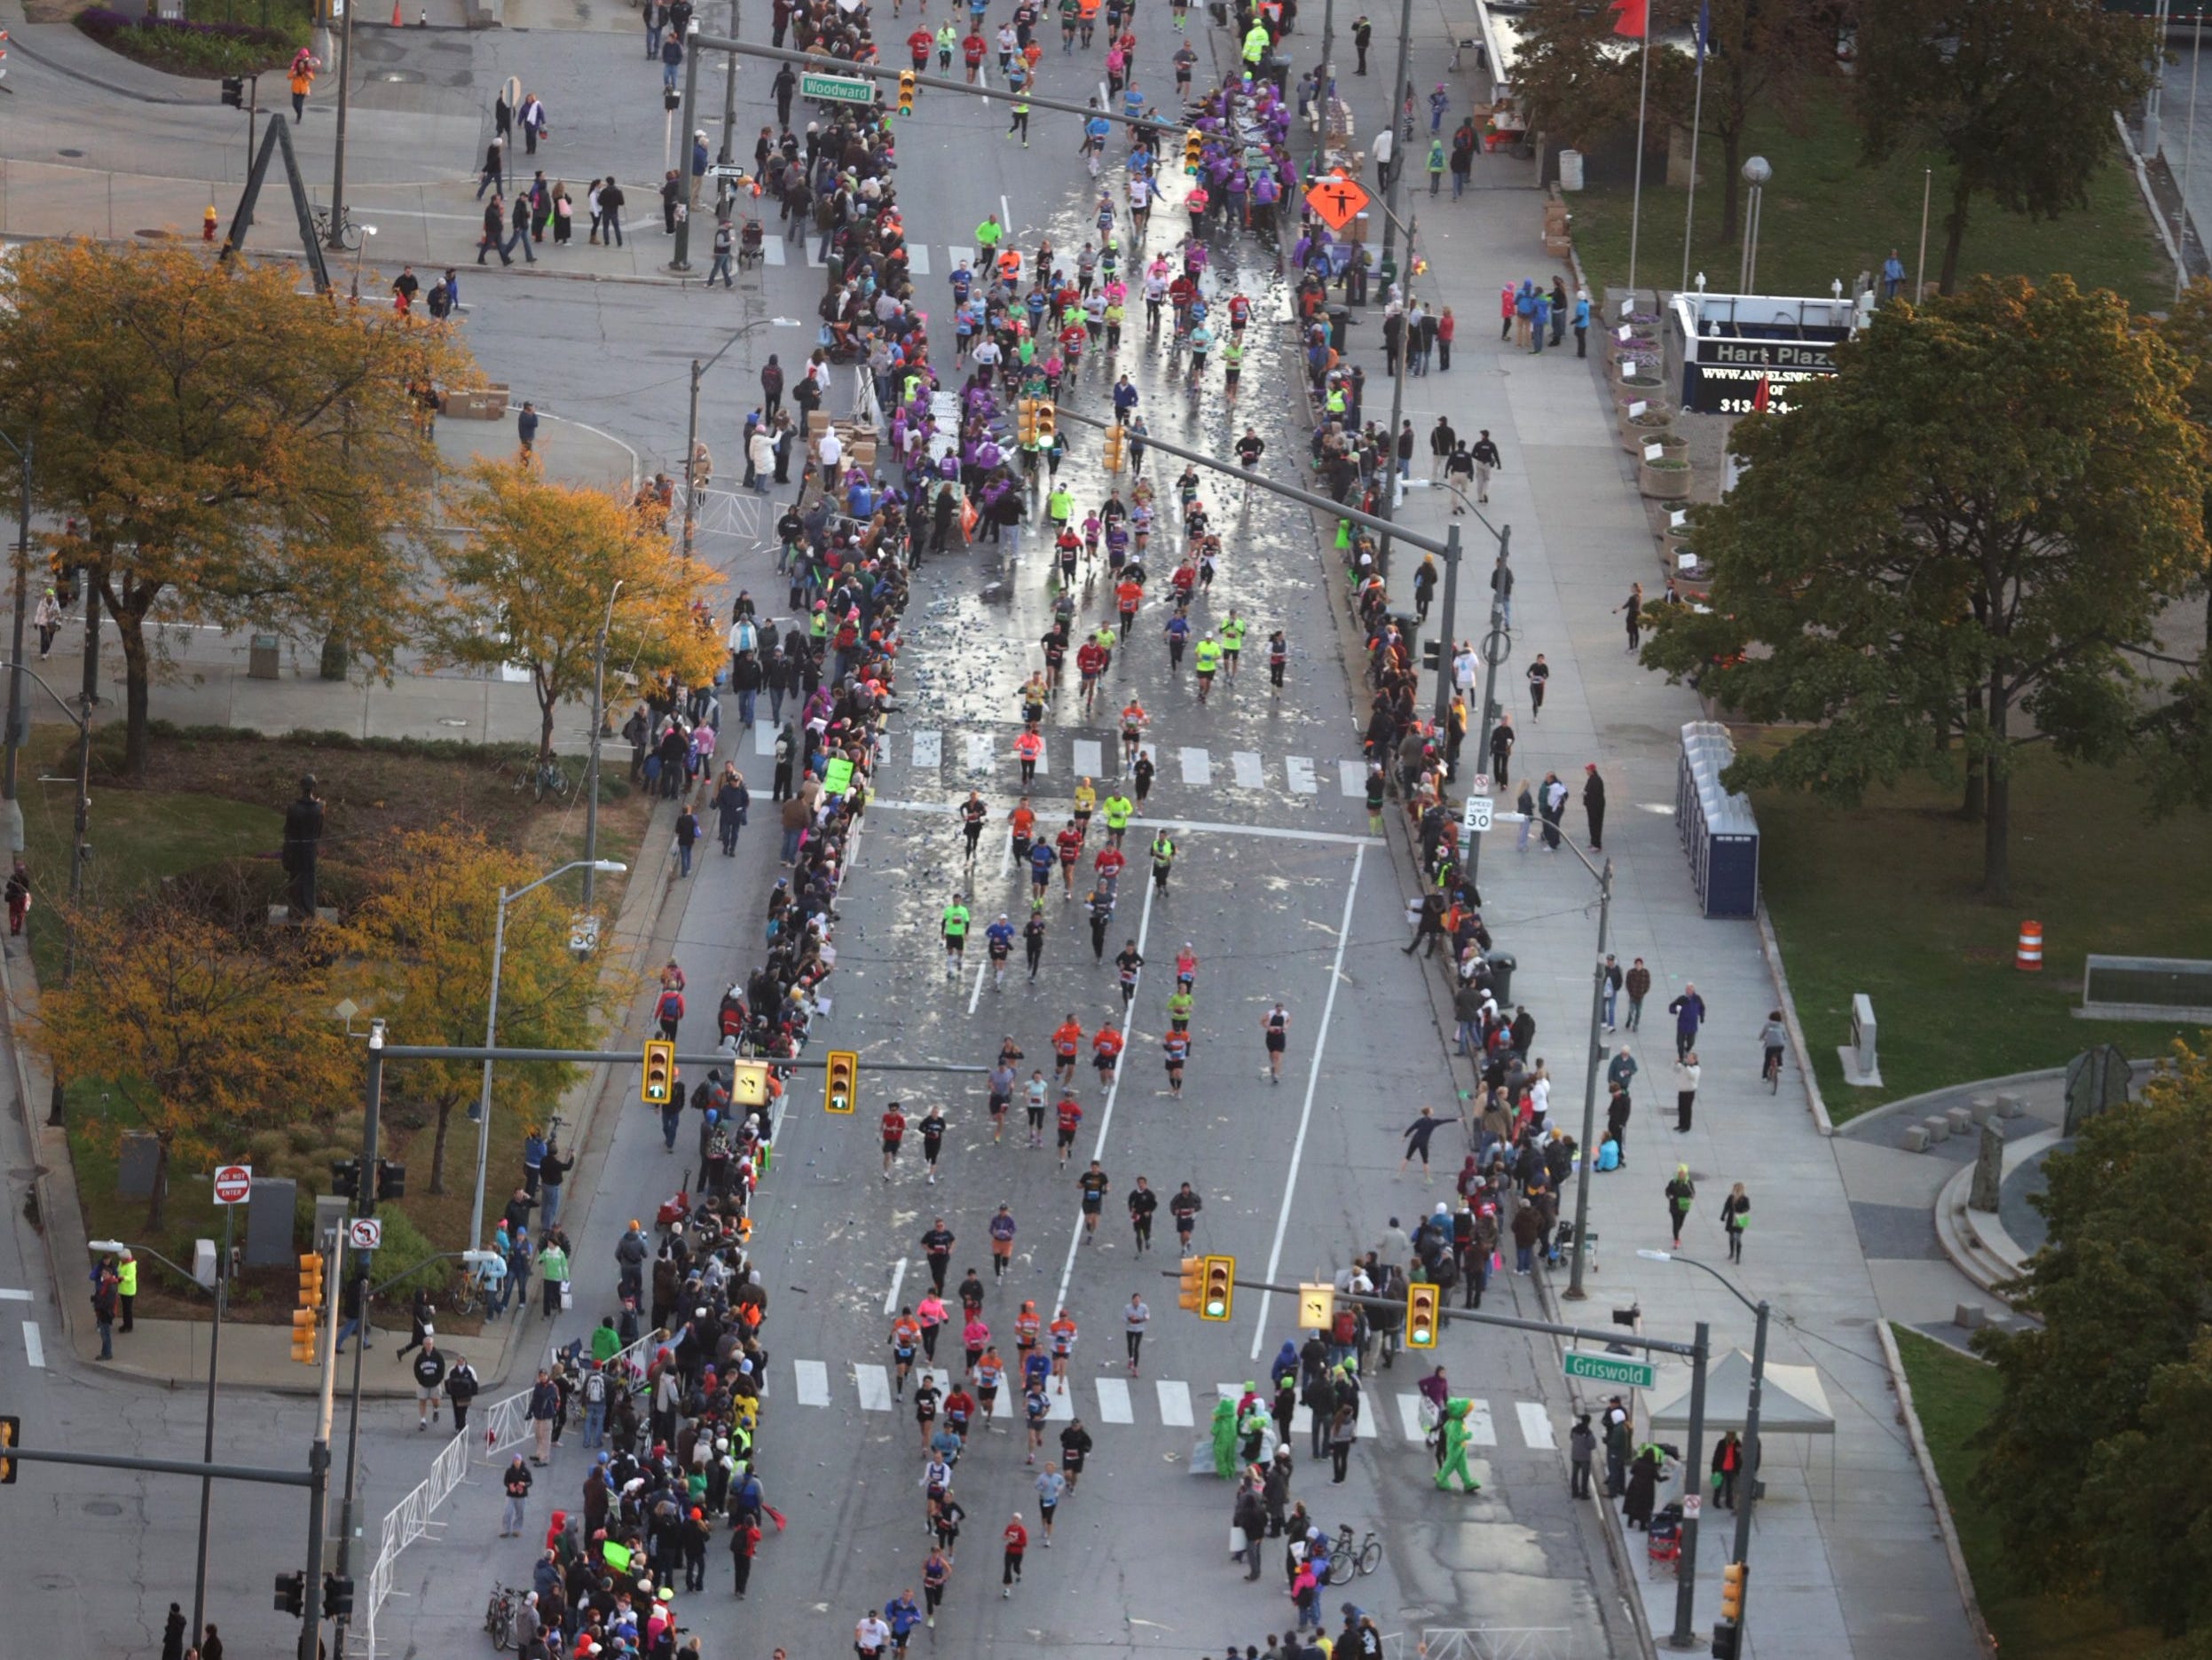 Runners come down Jefferson Avenue after exiting the Detroit Windsor tunnel  during the 36th Annual Detroit Free Press/Talmer Bank Marathon in Detroit on Sunday, Oct. 20, 2013.